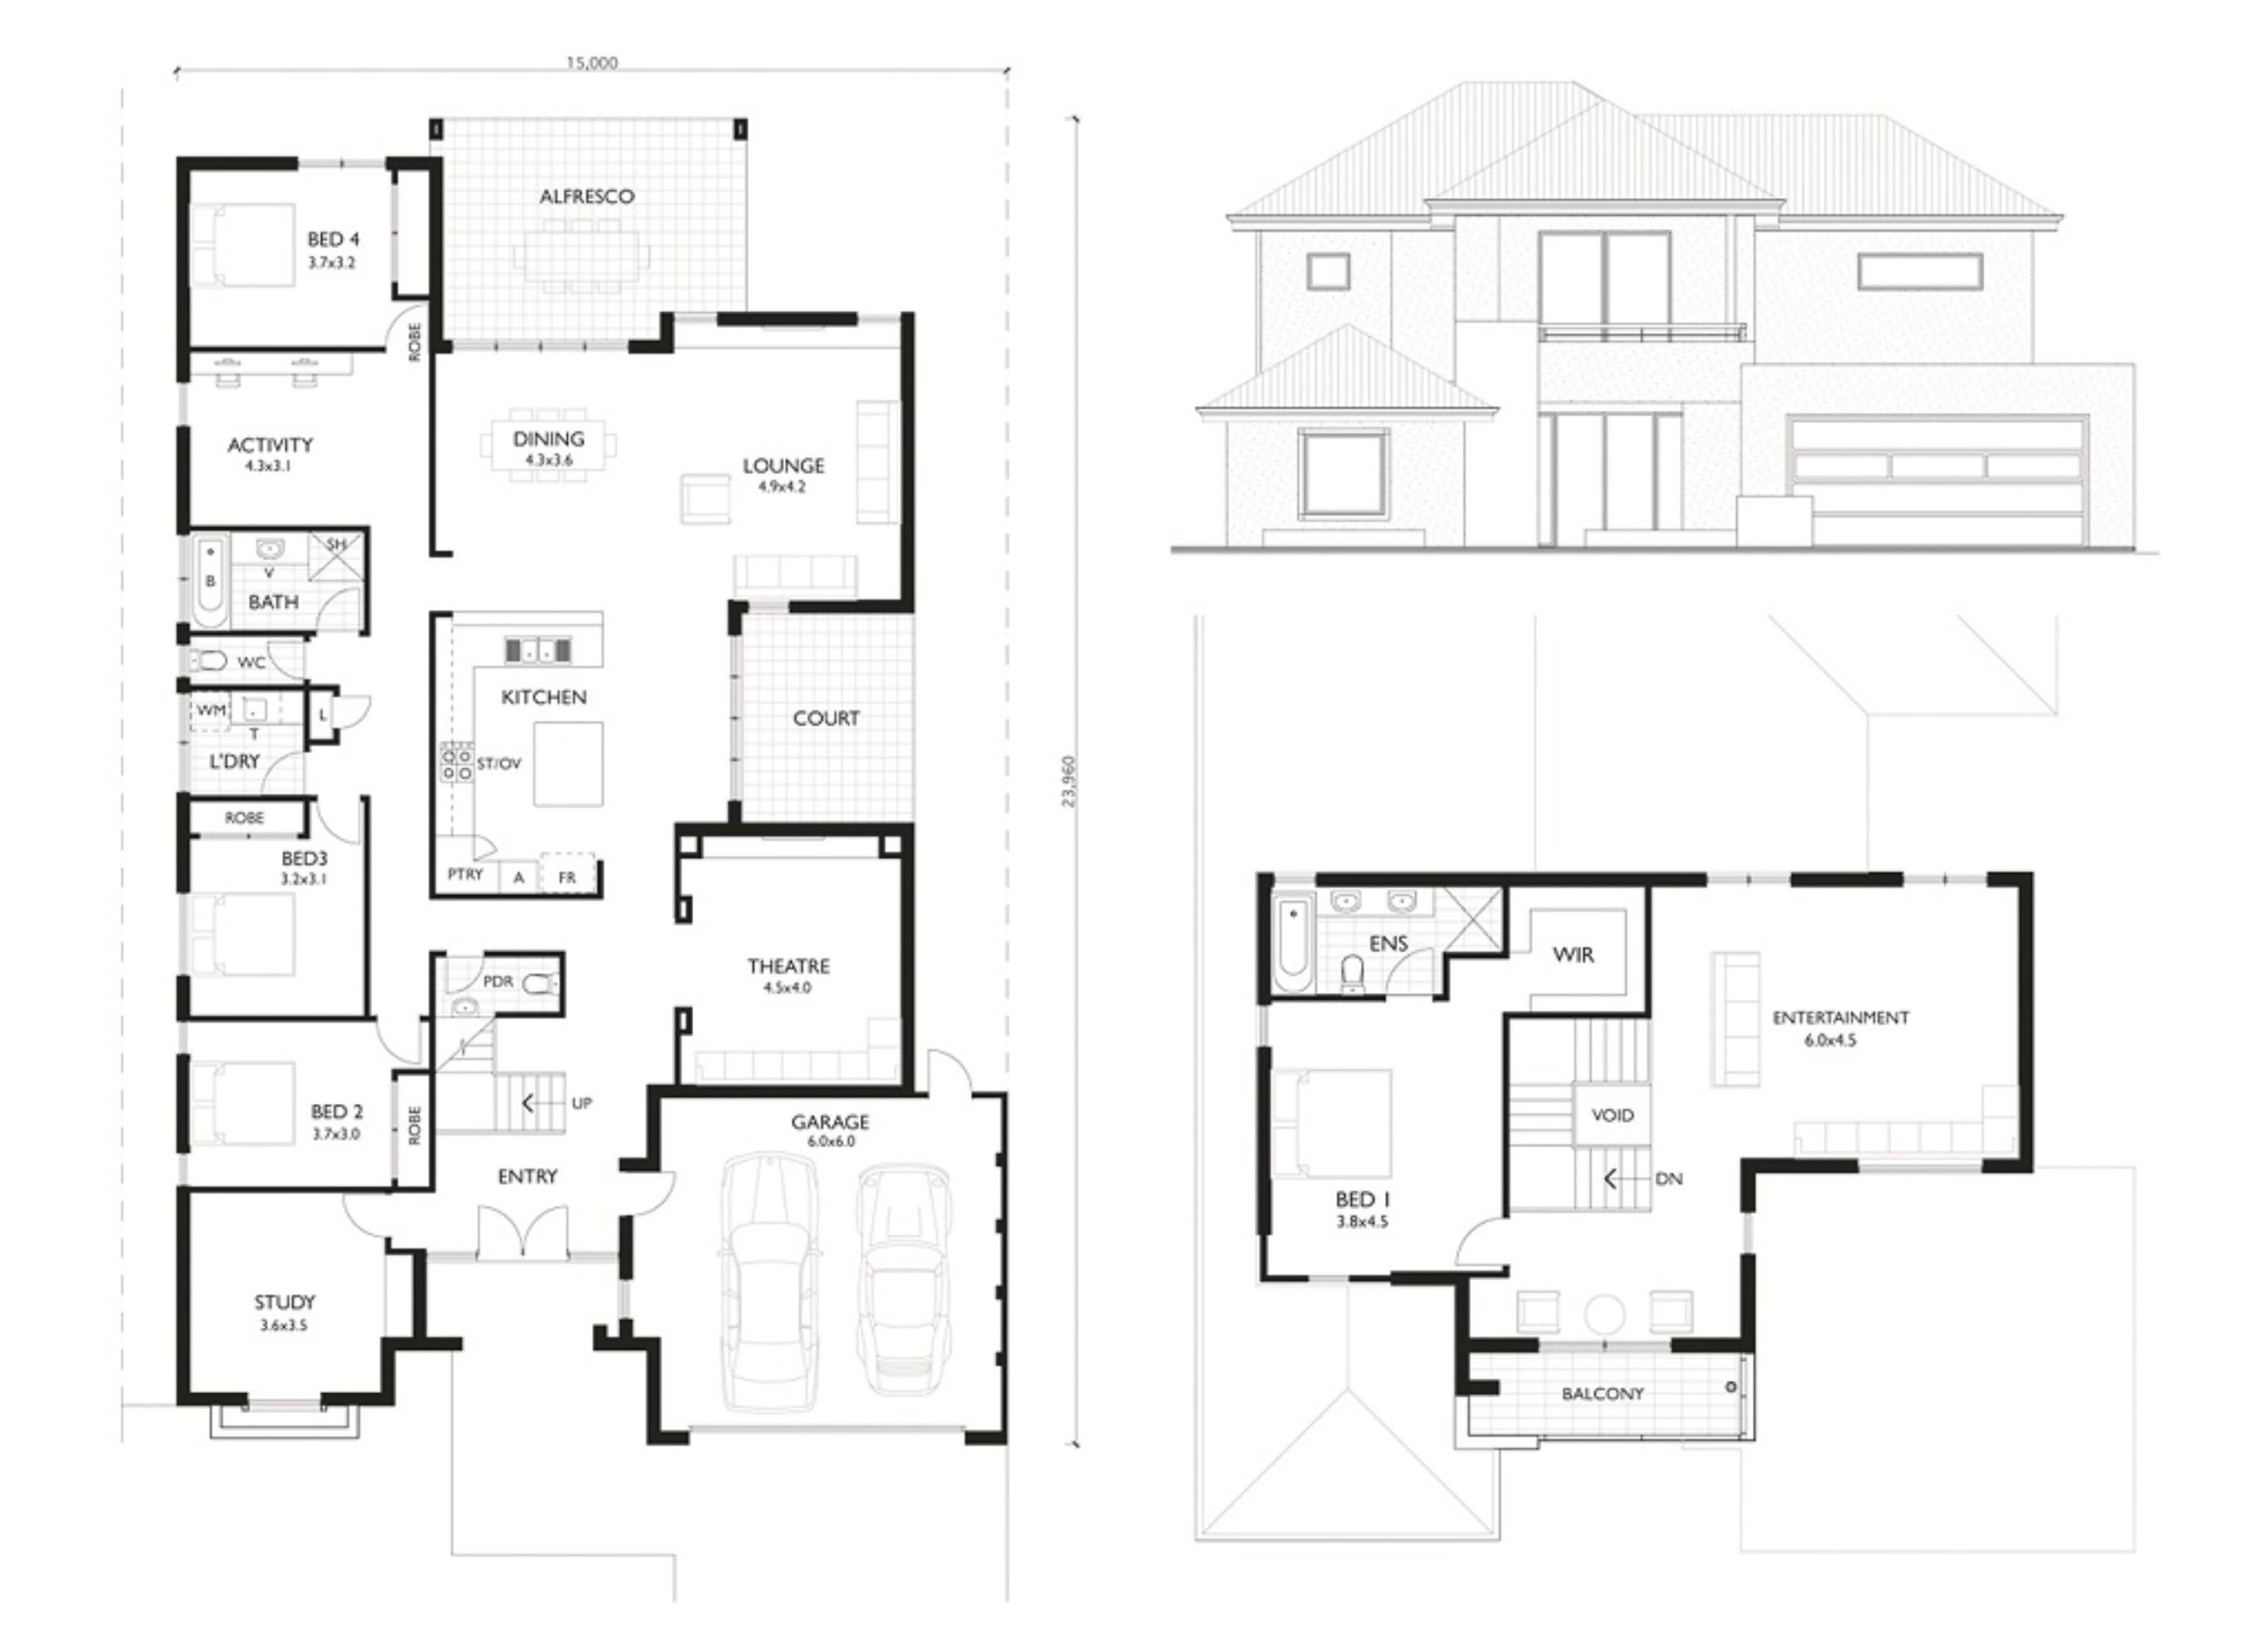 Escalade II floor plan